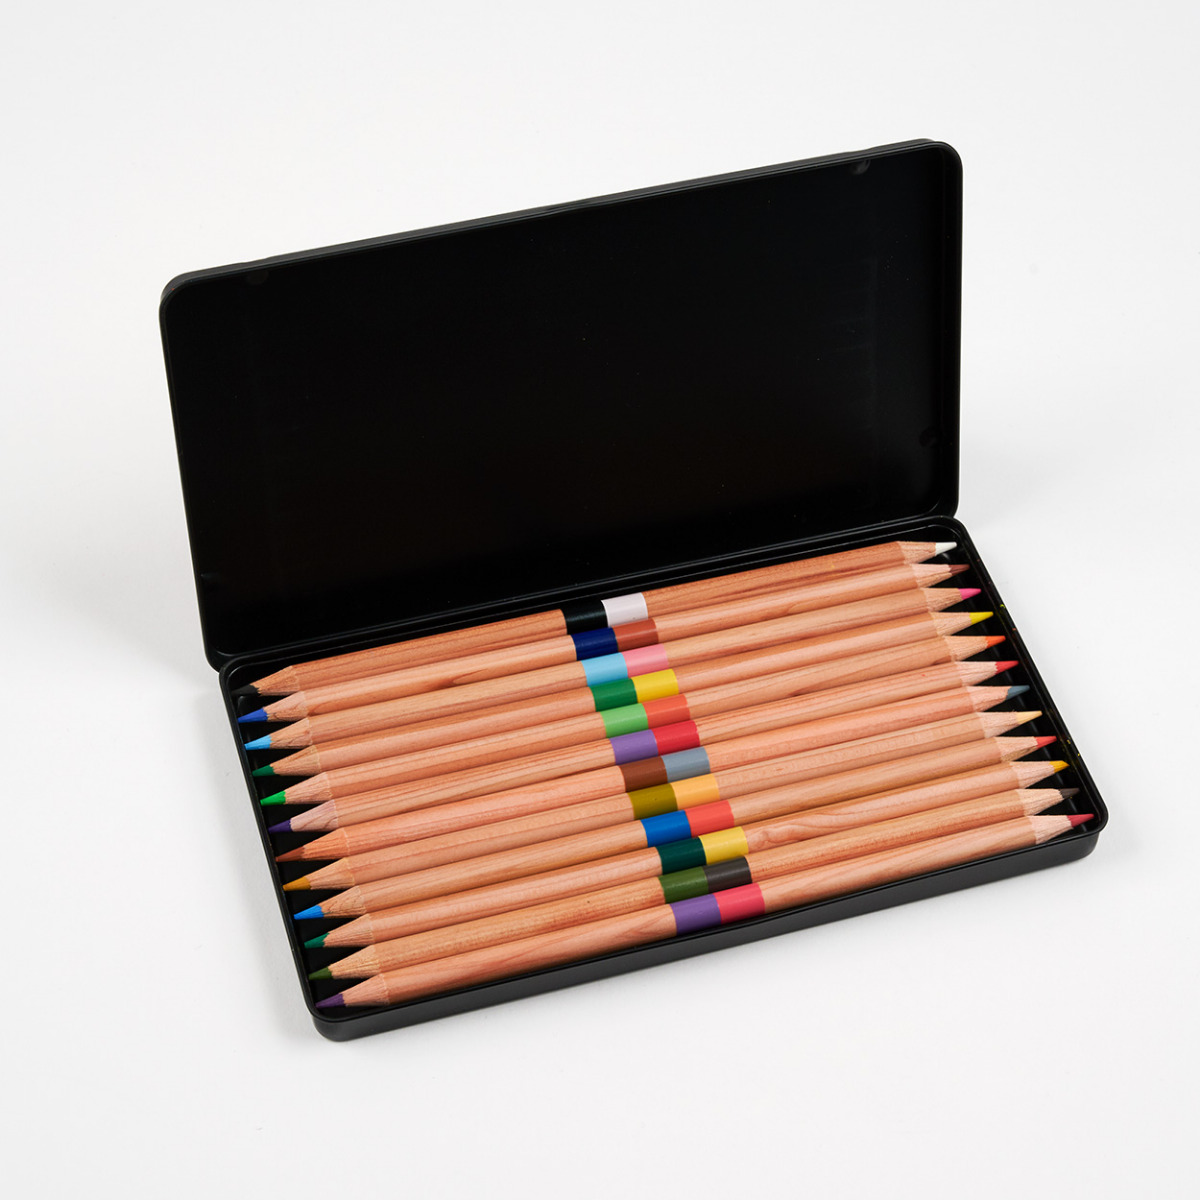 Glacier box of pencils